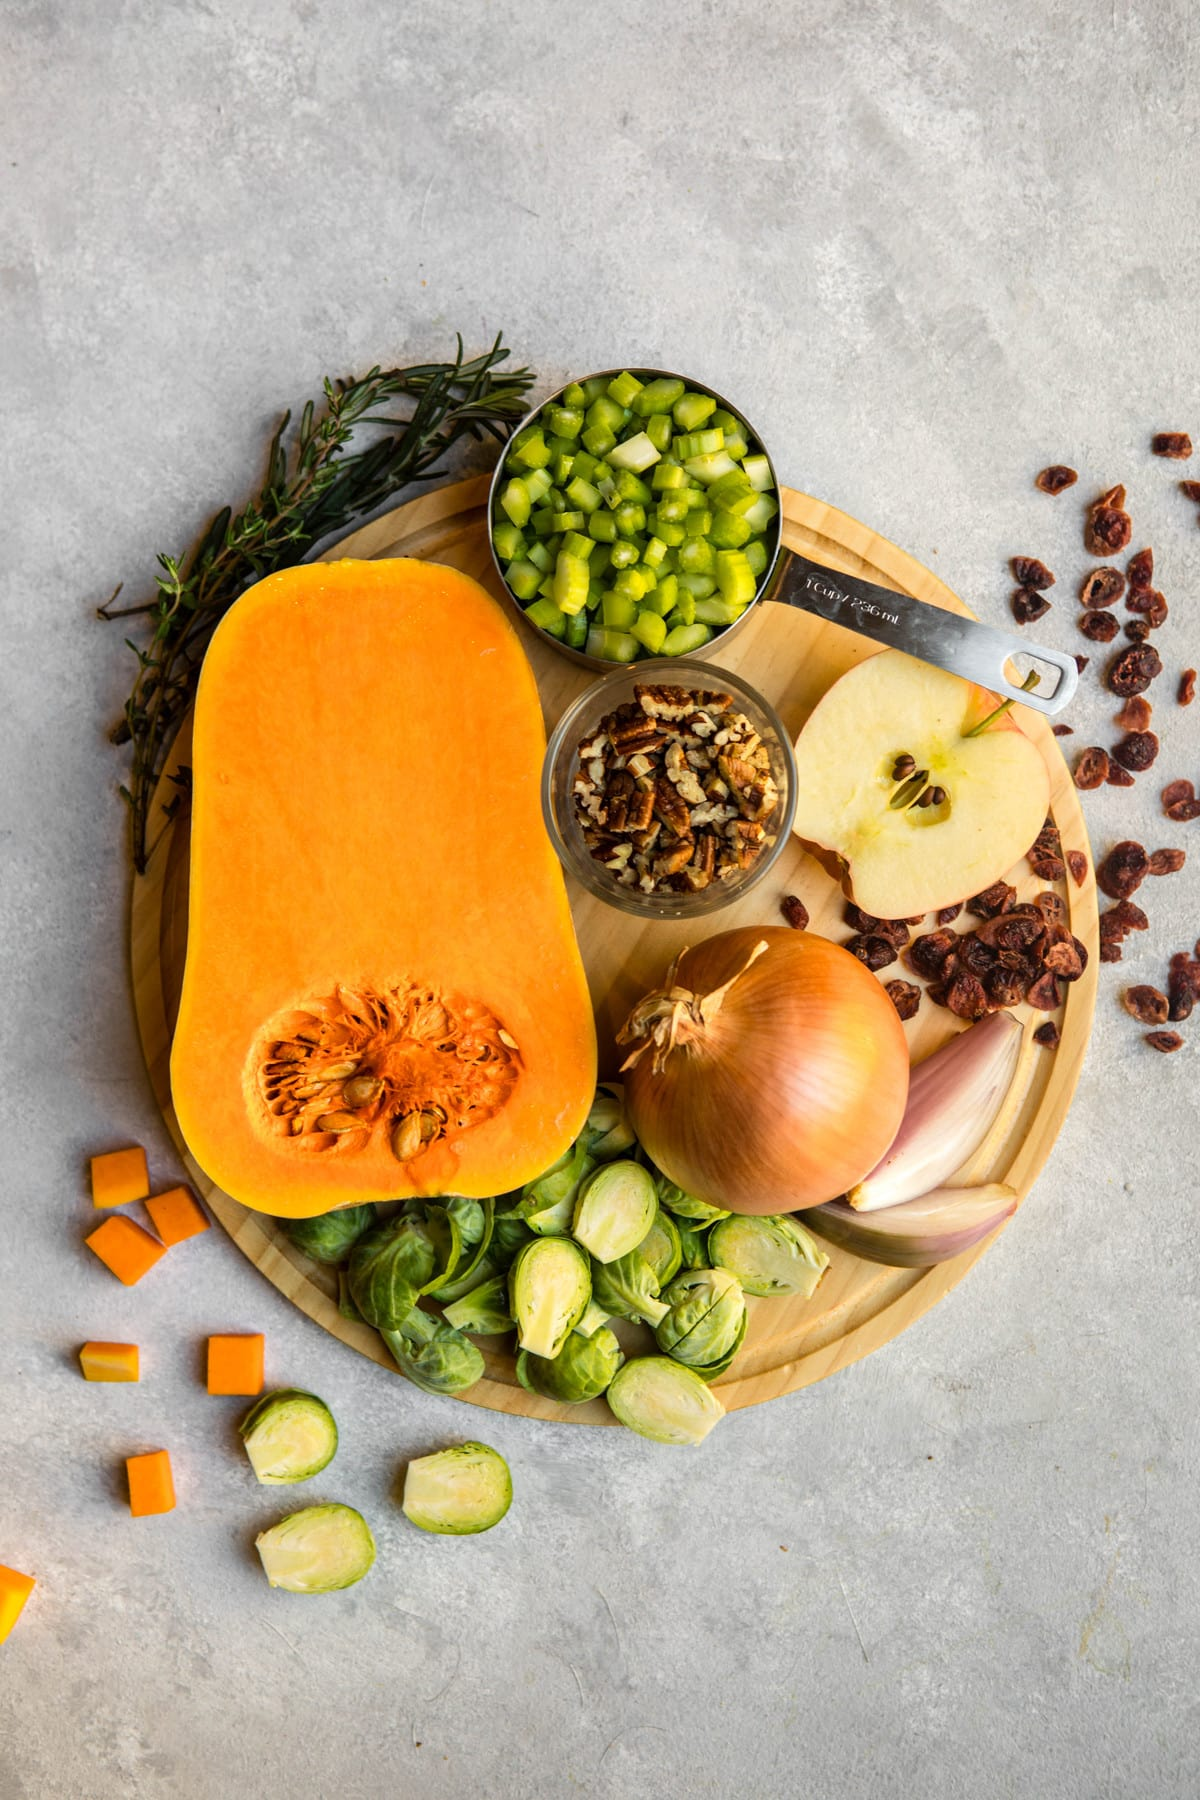 ingredients for roasted vegetable casserole on round wood cutting board